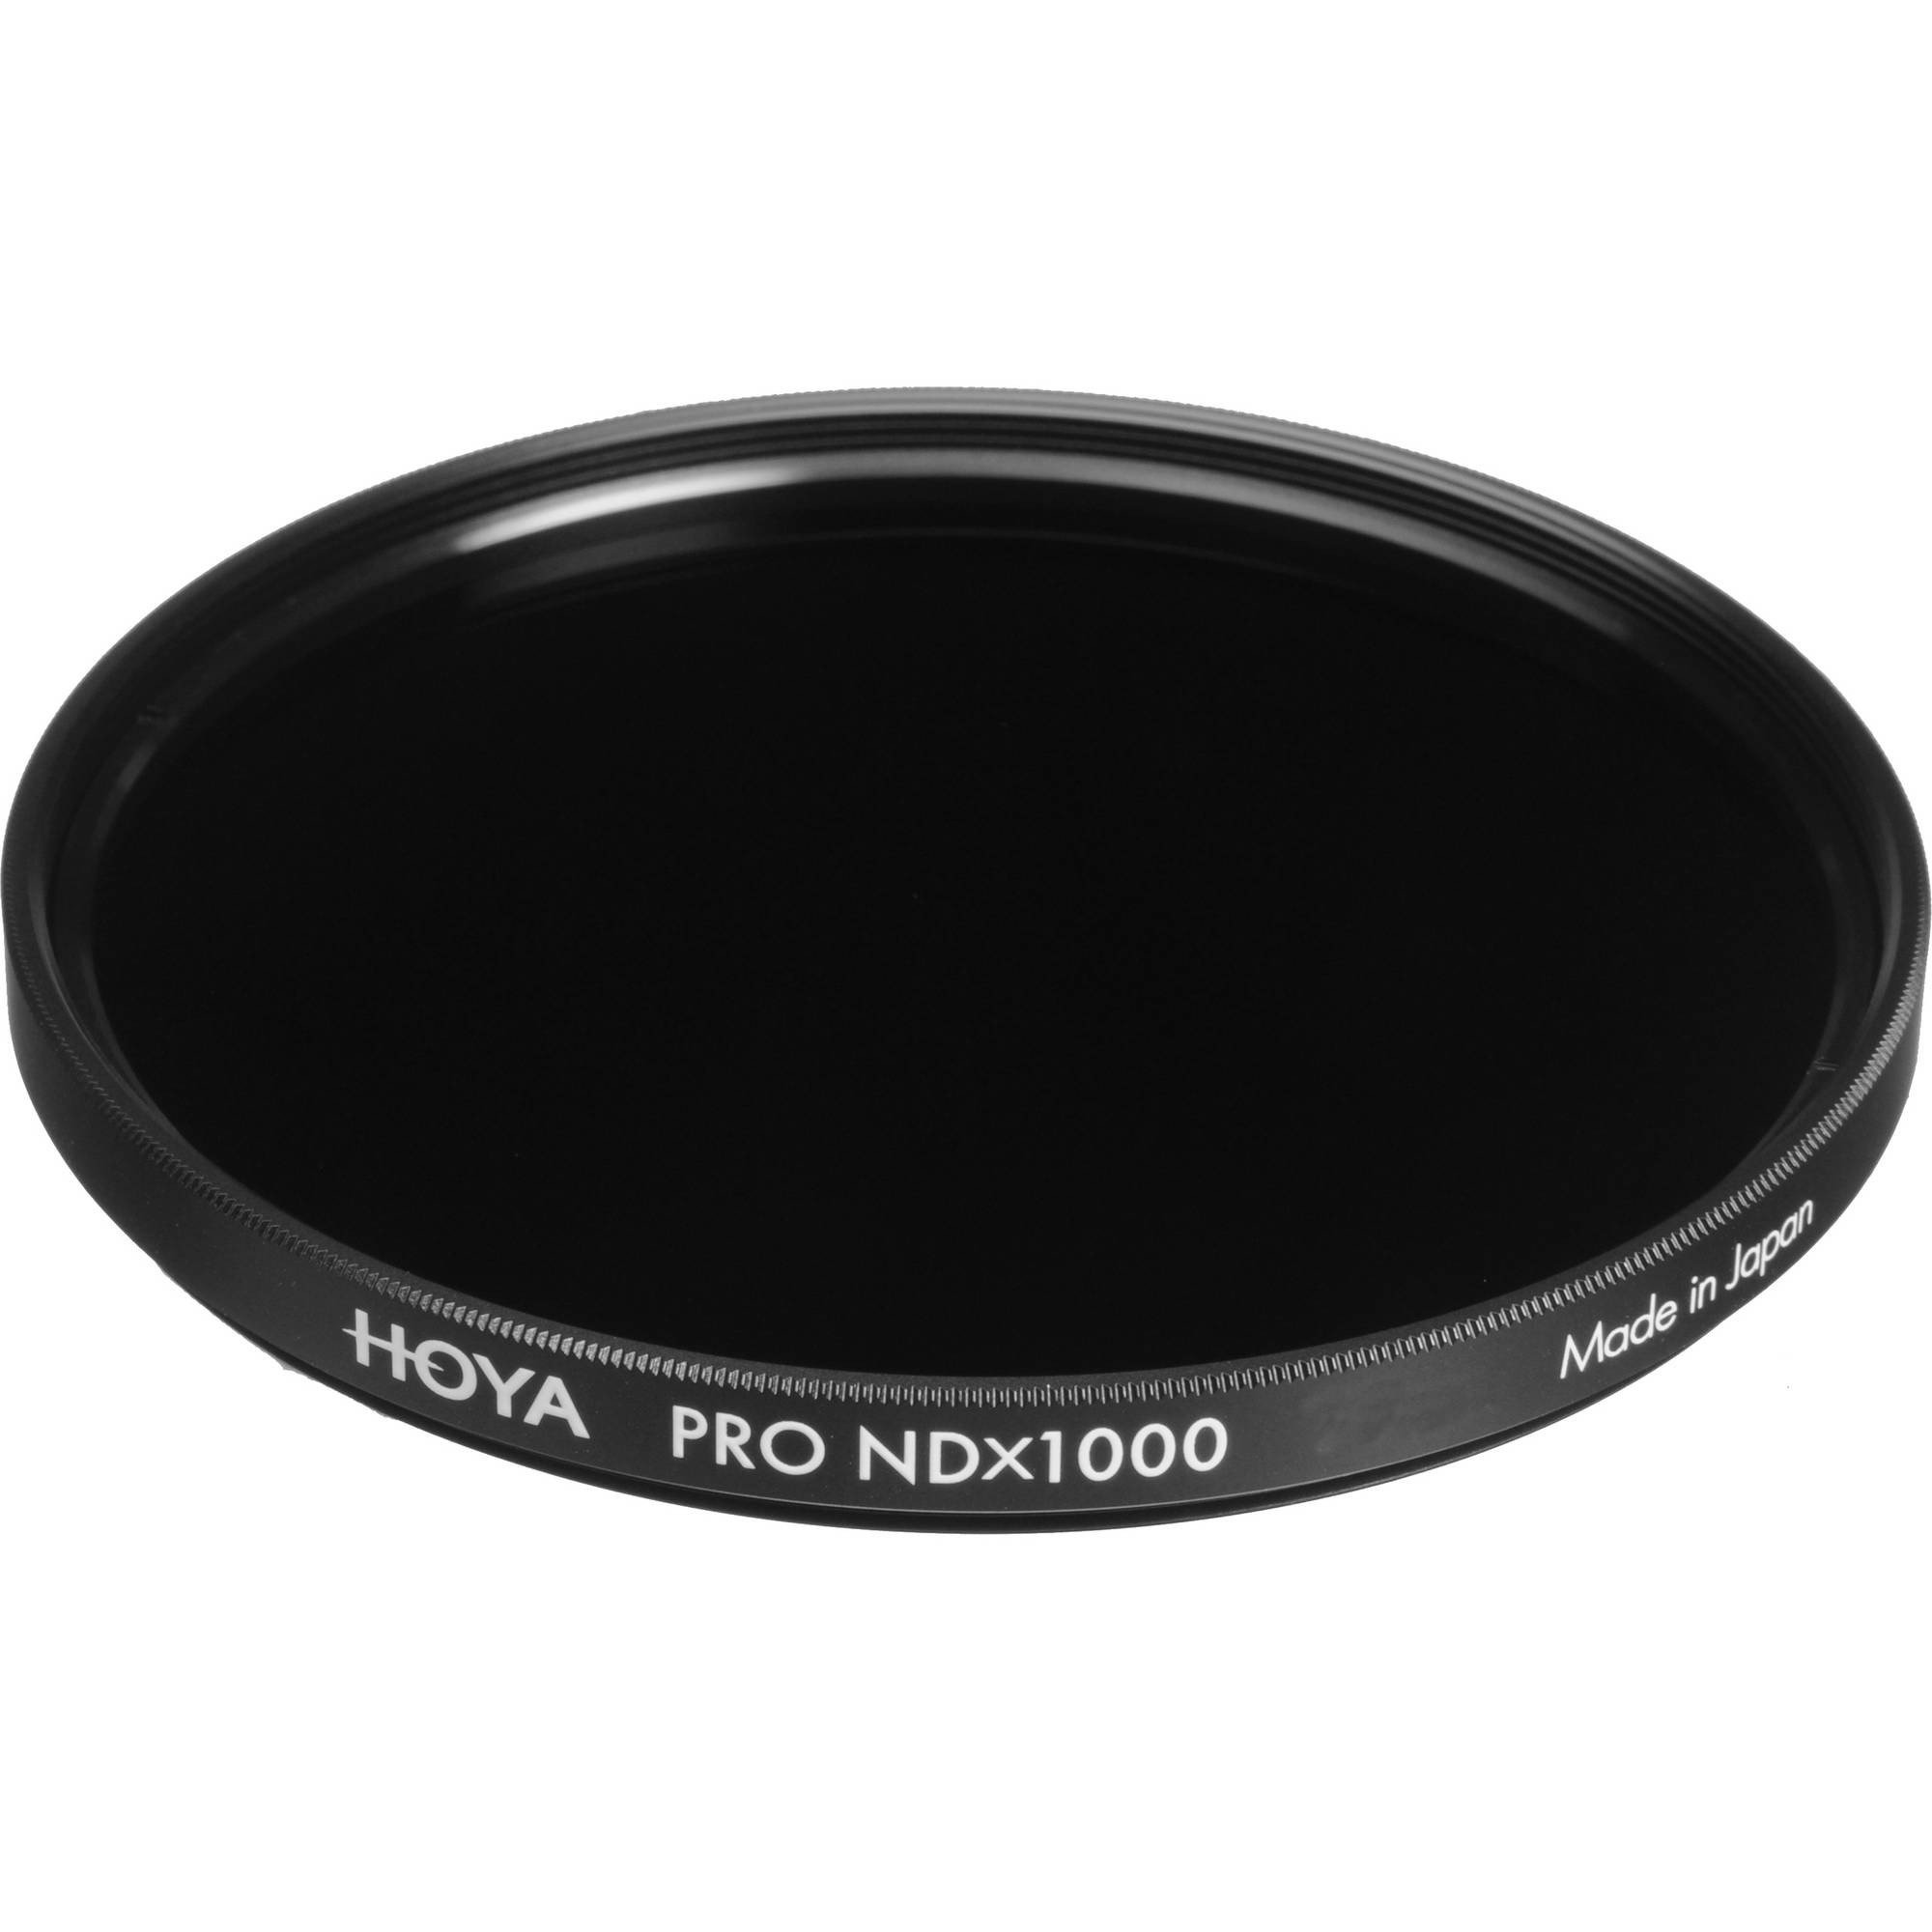 Hoya 77mm ProND1000 Filter XPD-77ND1000 *10-Stop Neutral Density Filter* NEW!